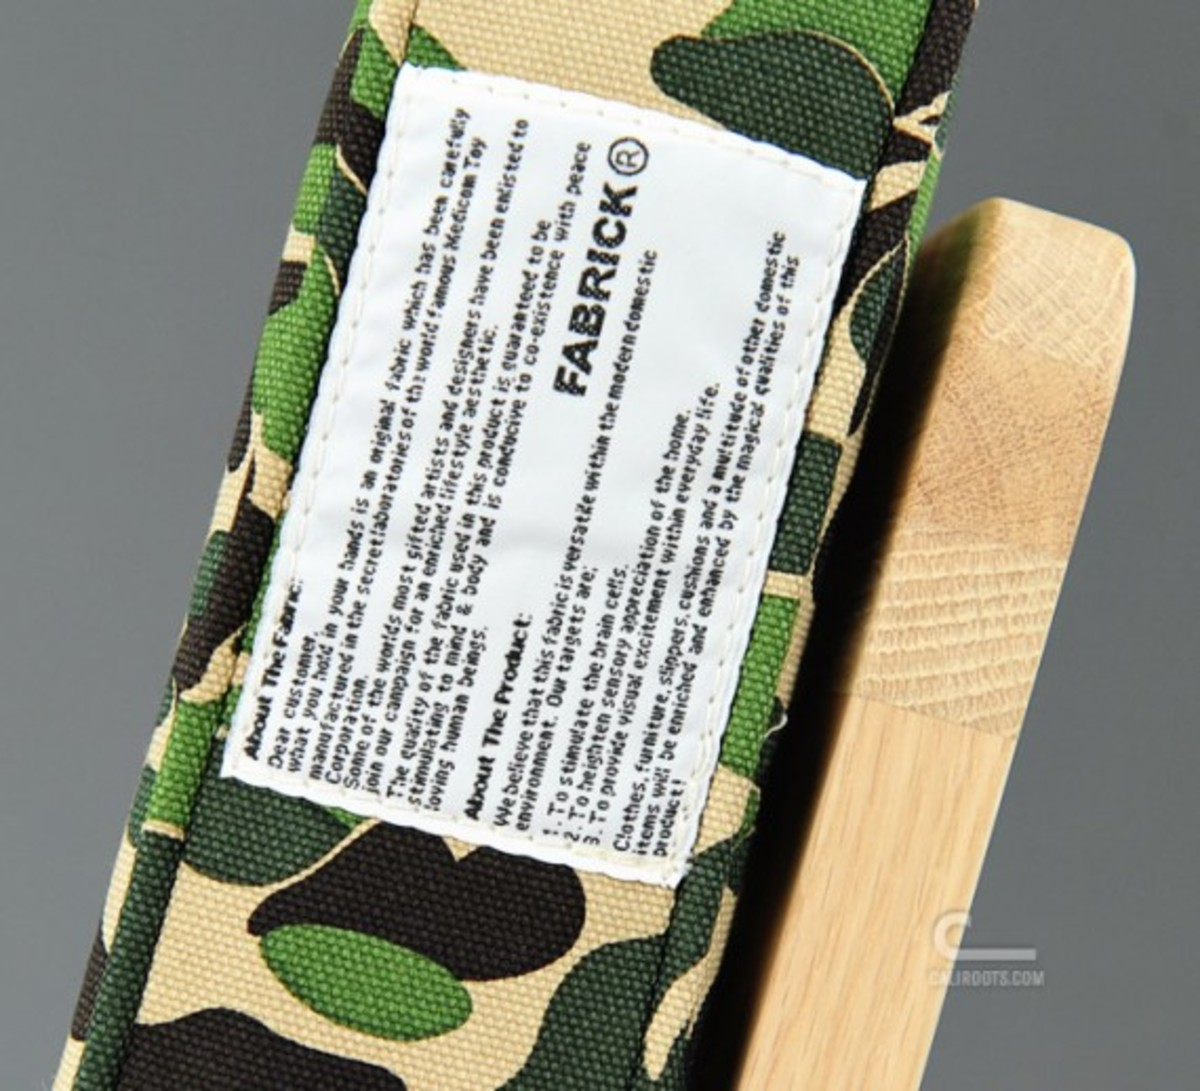 a-bathing-ape-medicom-toy-karimoku-bape-camo-furniture-19